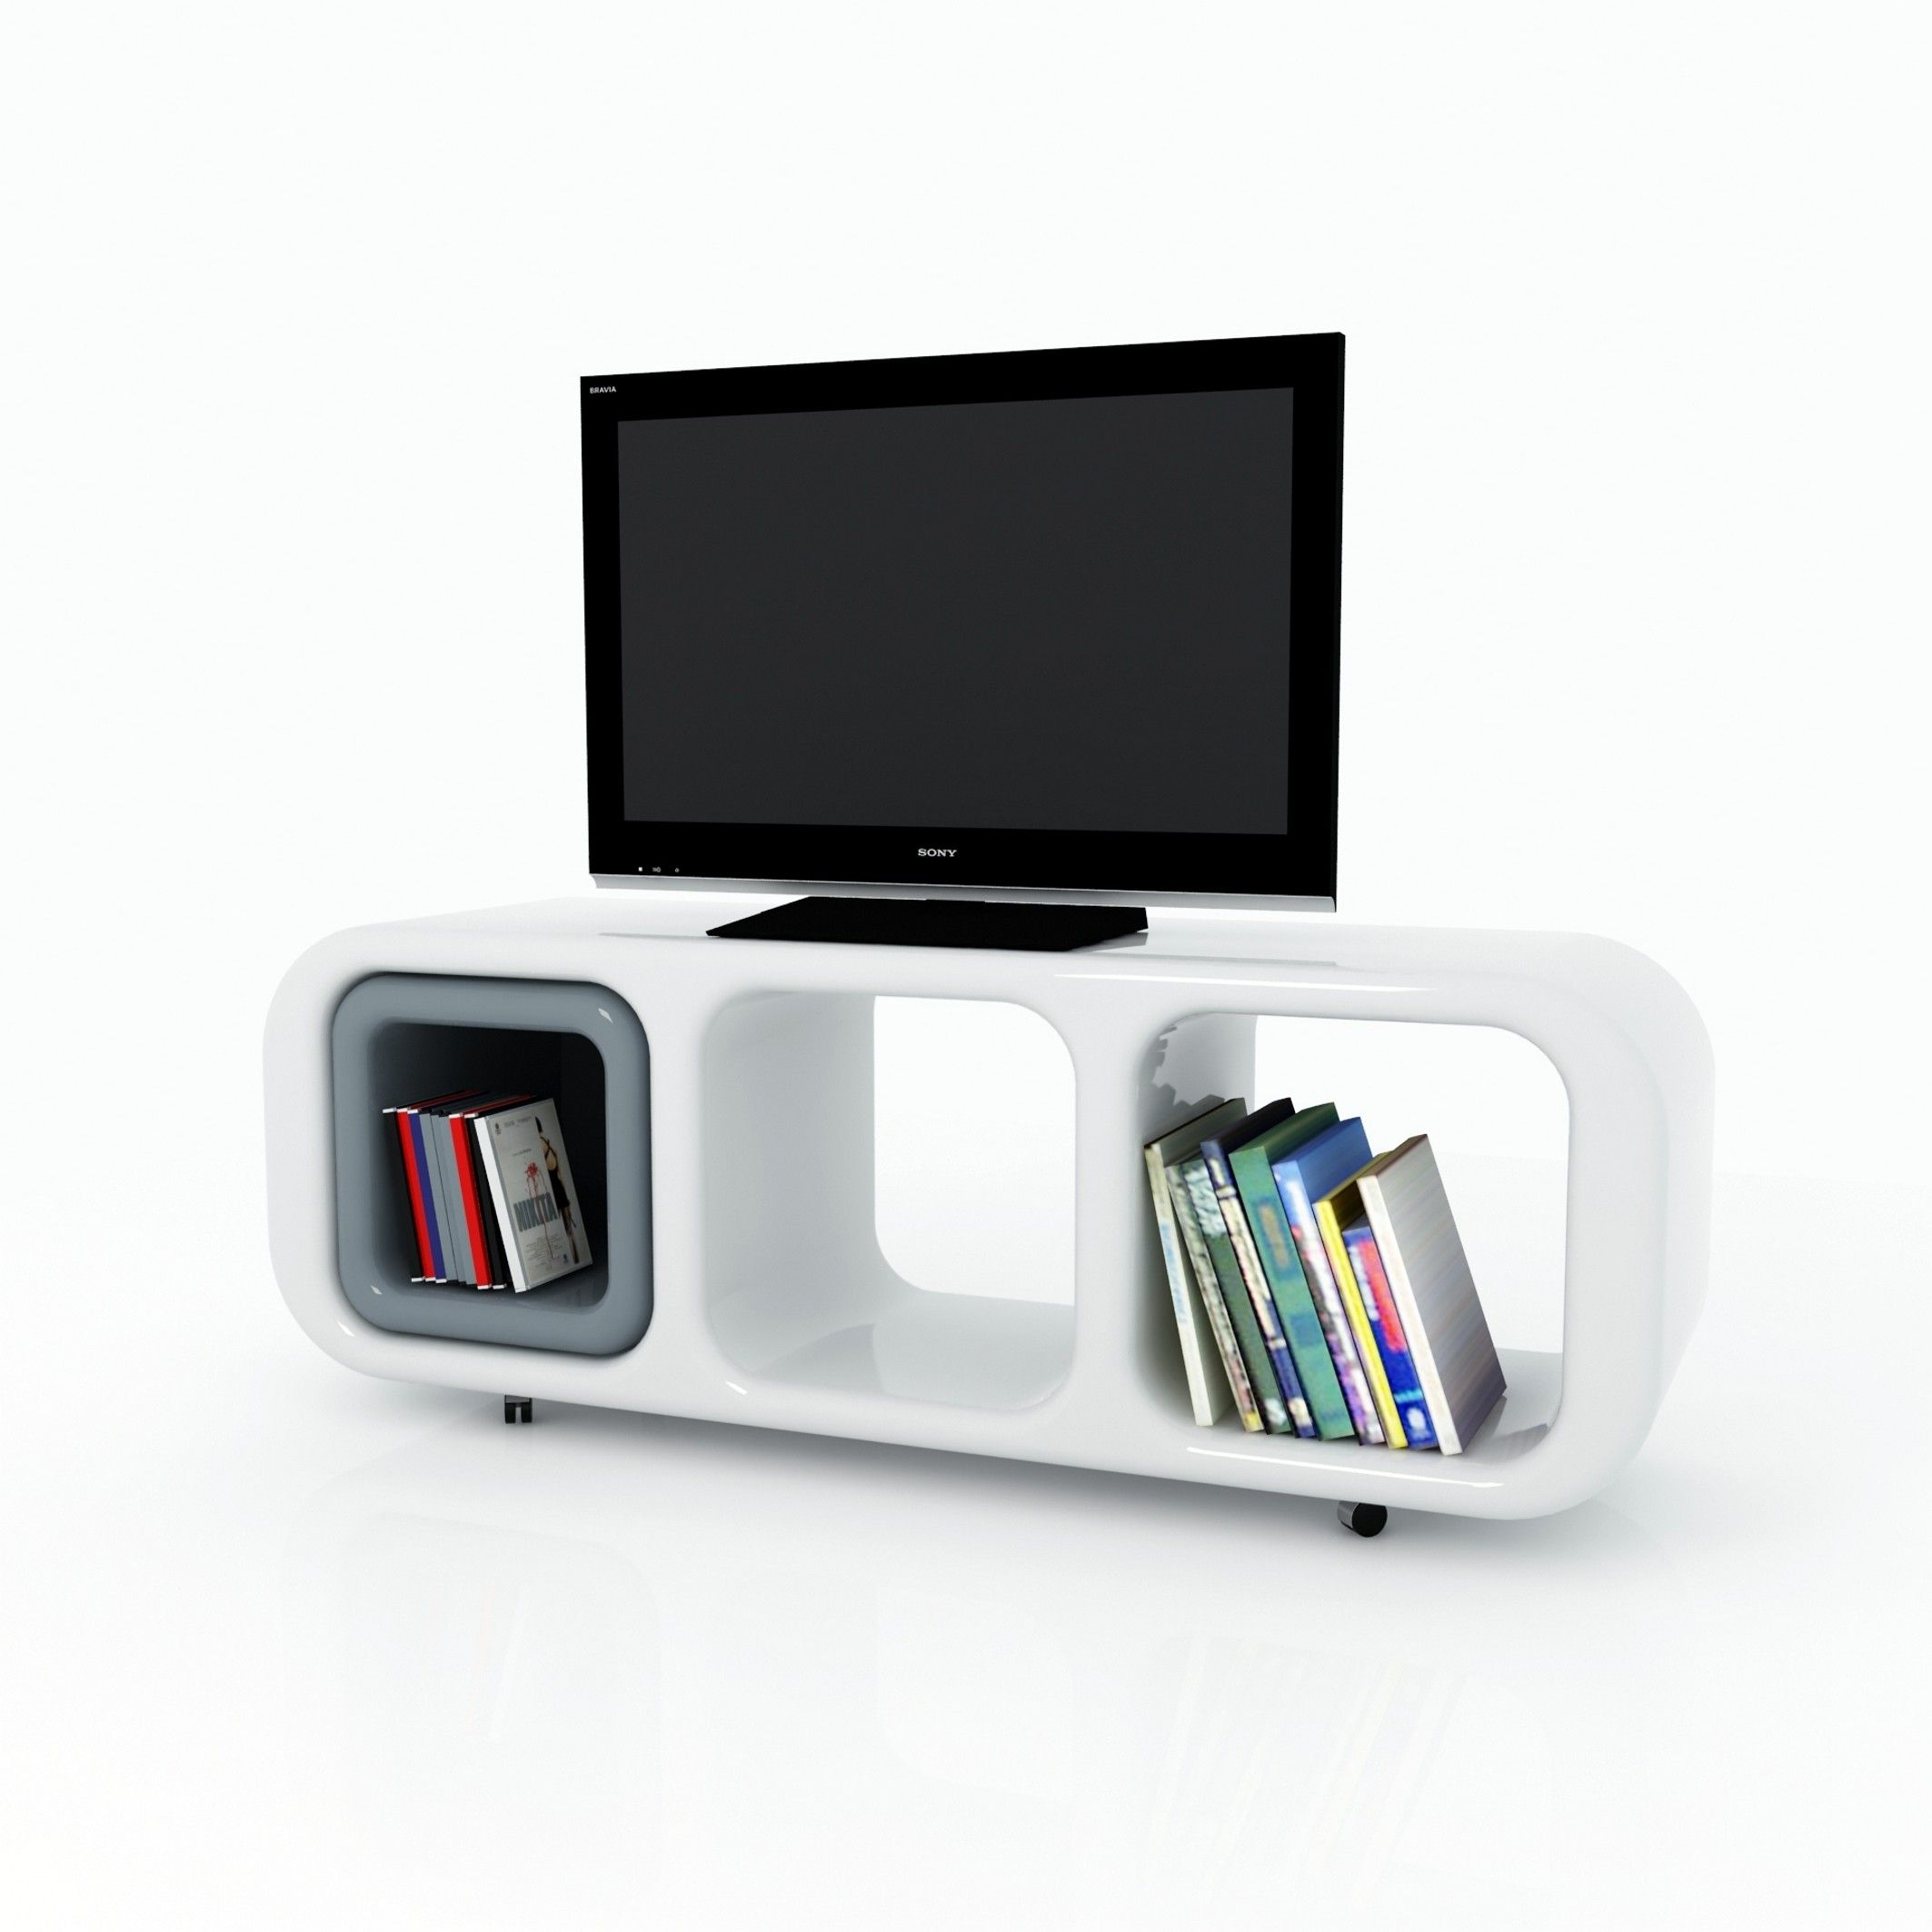 Mobile porta tv eracle design moderno su ruote in resina - Mobile porta liquori moderno ...